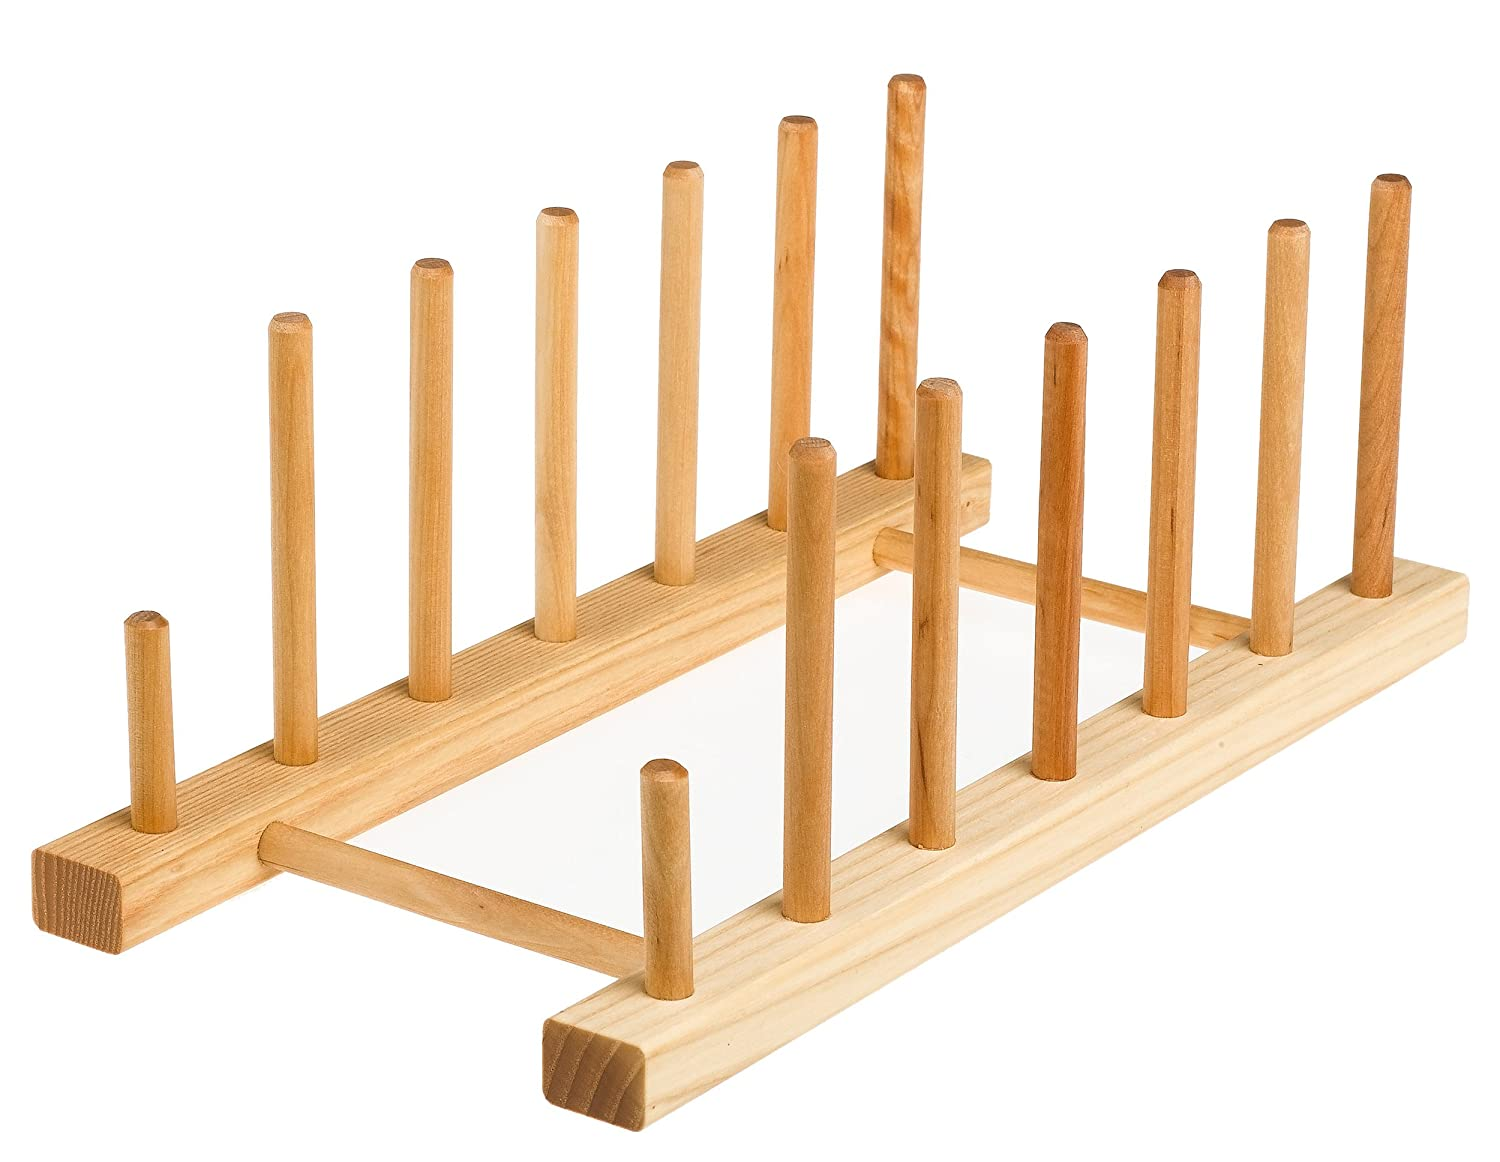 Amazon.com J.K. Adams 13-Inch-by-6-Inch Maple Wood Flat Plate Drying Rack 6-Plate Capacity Cabinet Organizers Kitchen u0026 Dining  sc 1 st  Amazon.com & Amazon.com: J.K. Adams 13-Inch-by-6-Inch Maple Wood Flat Plate ...